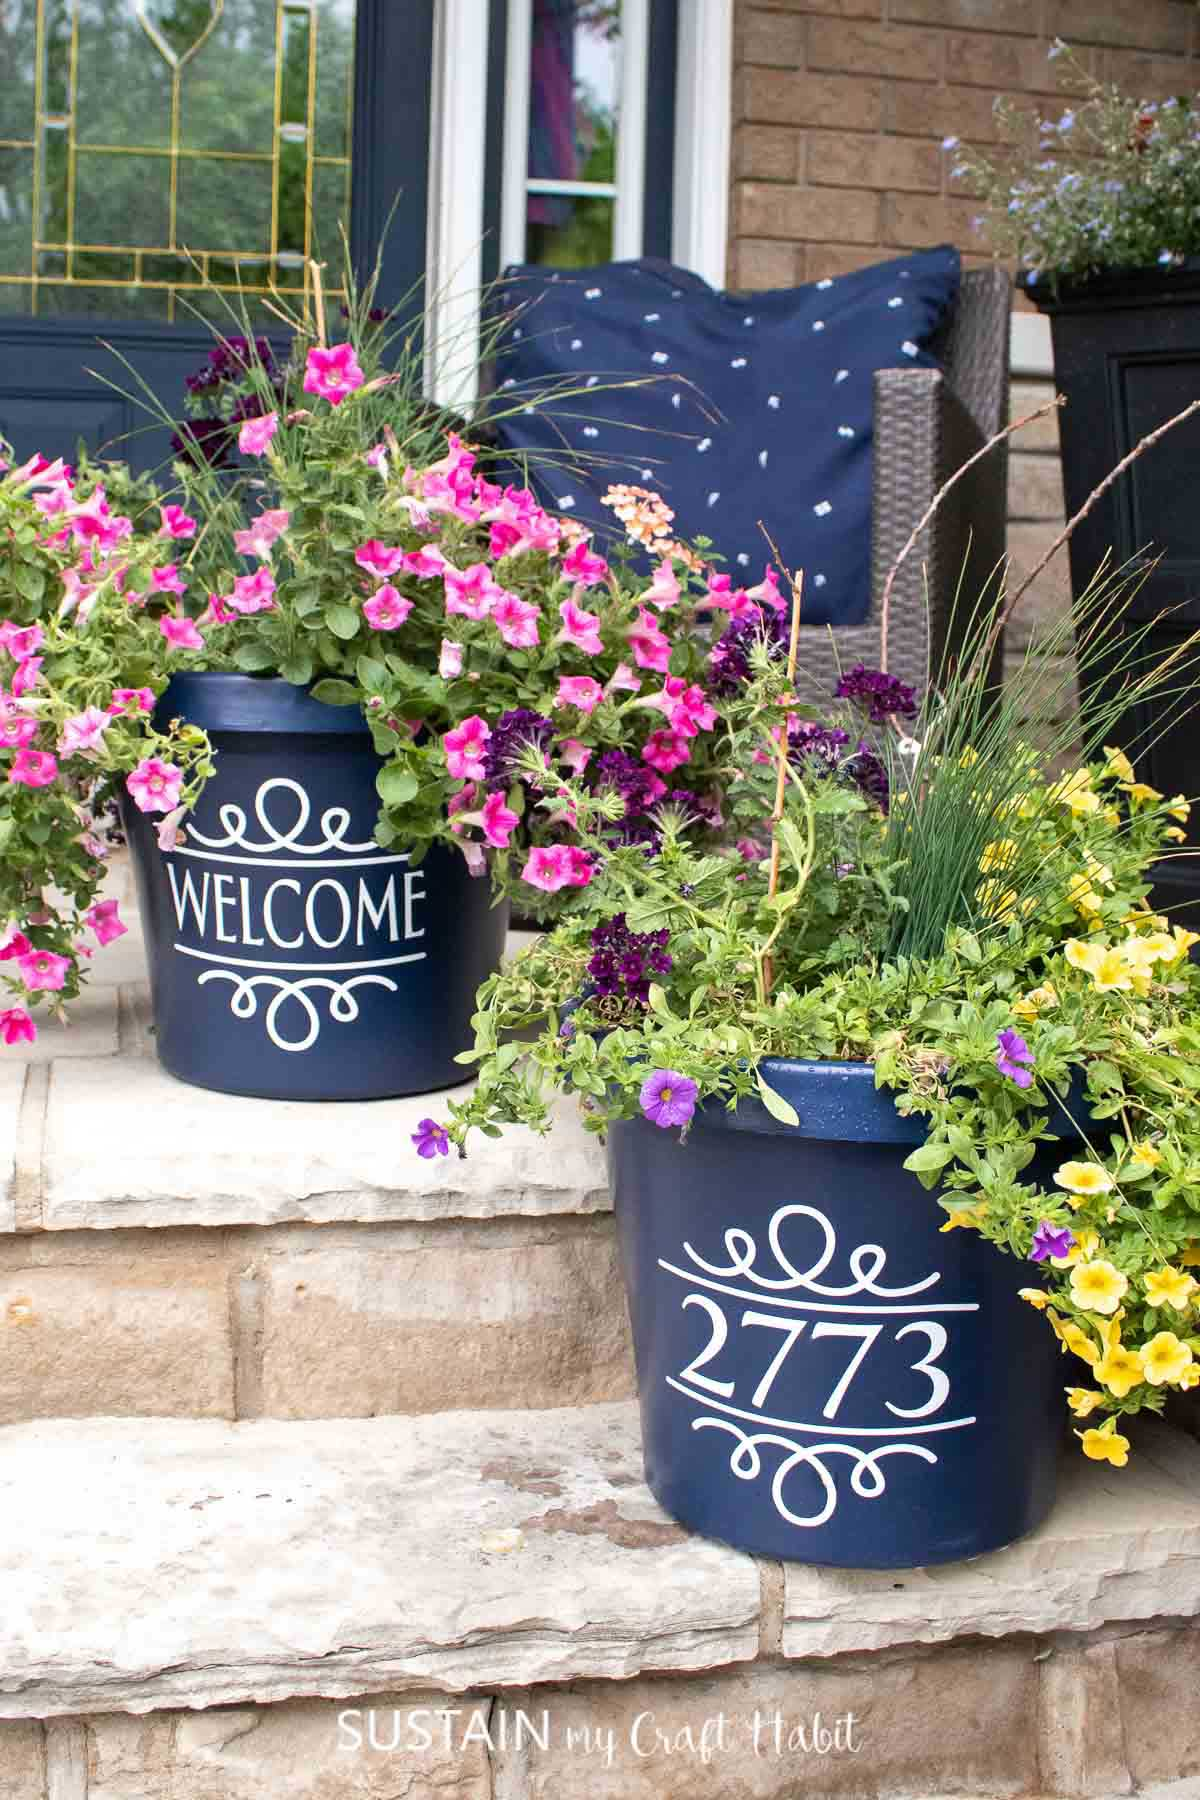 A pair of navy blue planters staggered on the steps of the porch. The planters are filled with colorful flowers and have white decals on the front. One decal says welcome and the other has a house number.